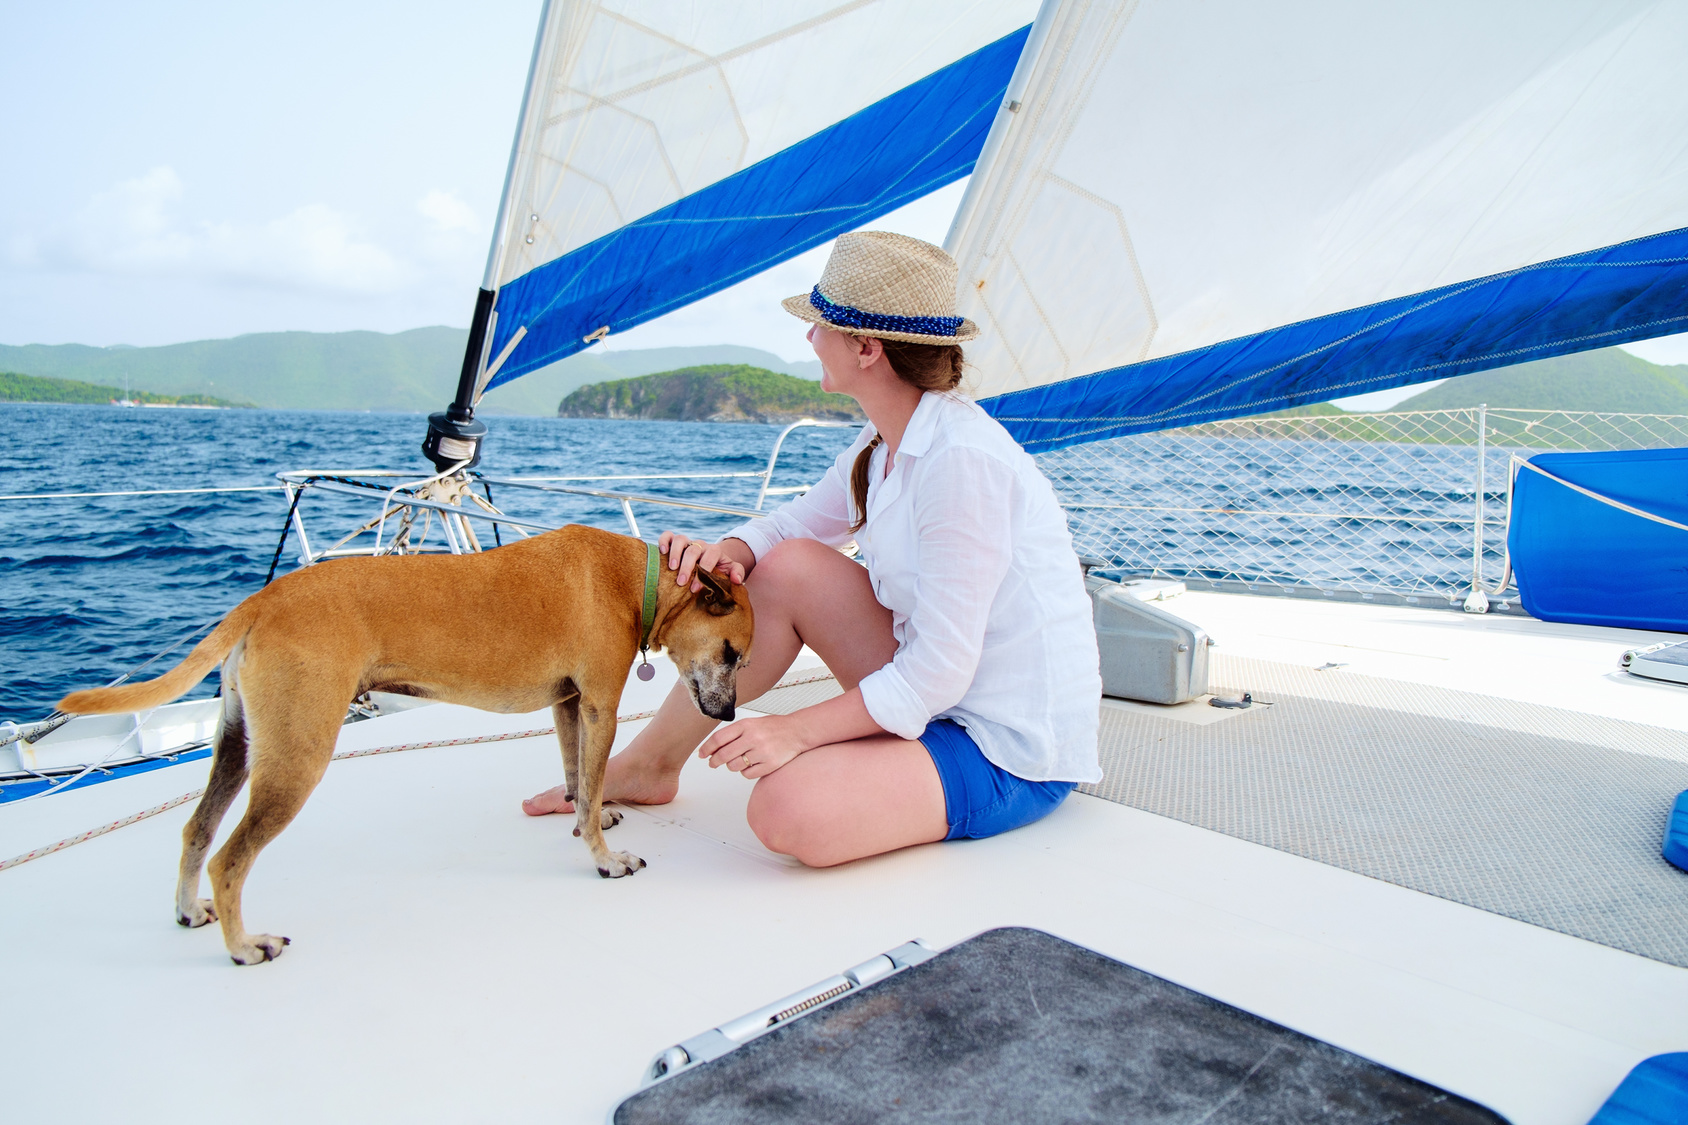 Sailing with a pet